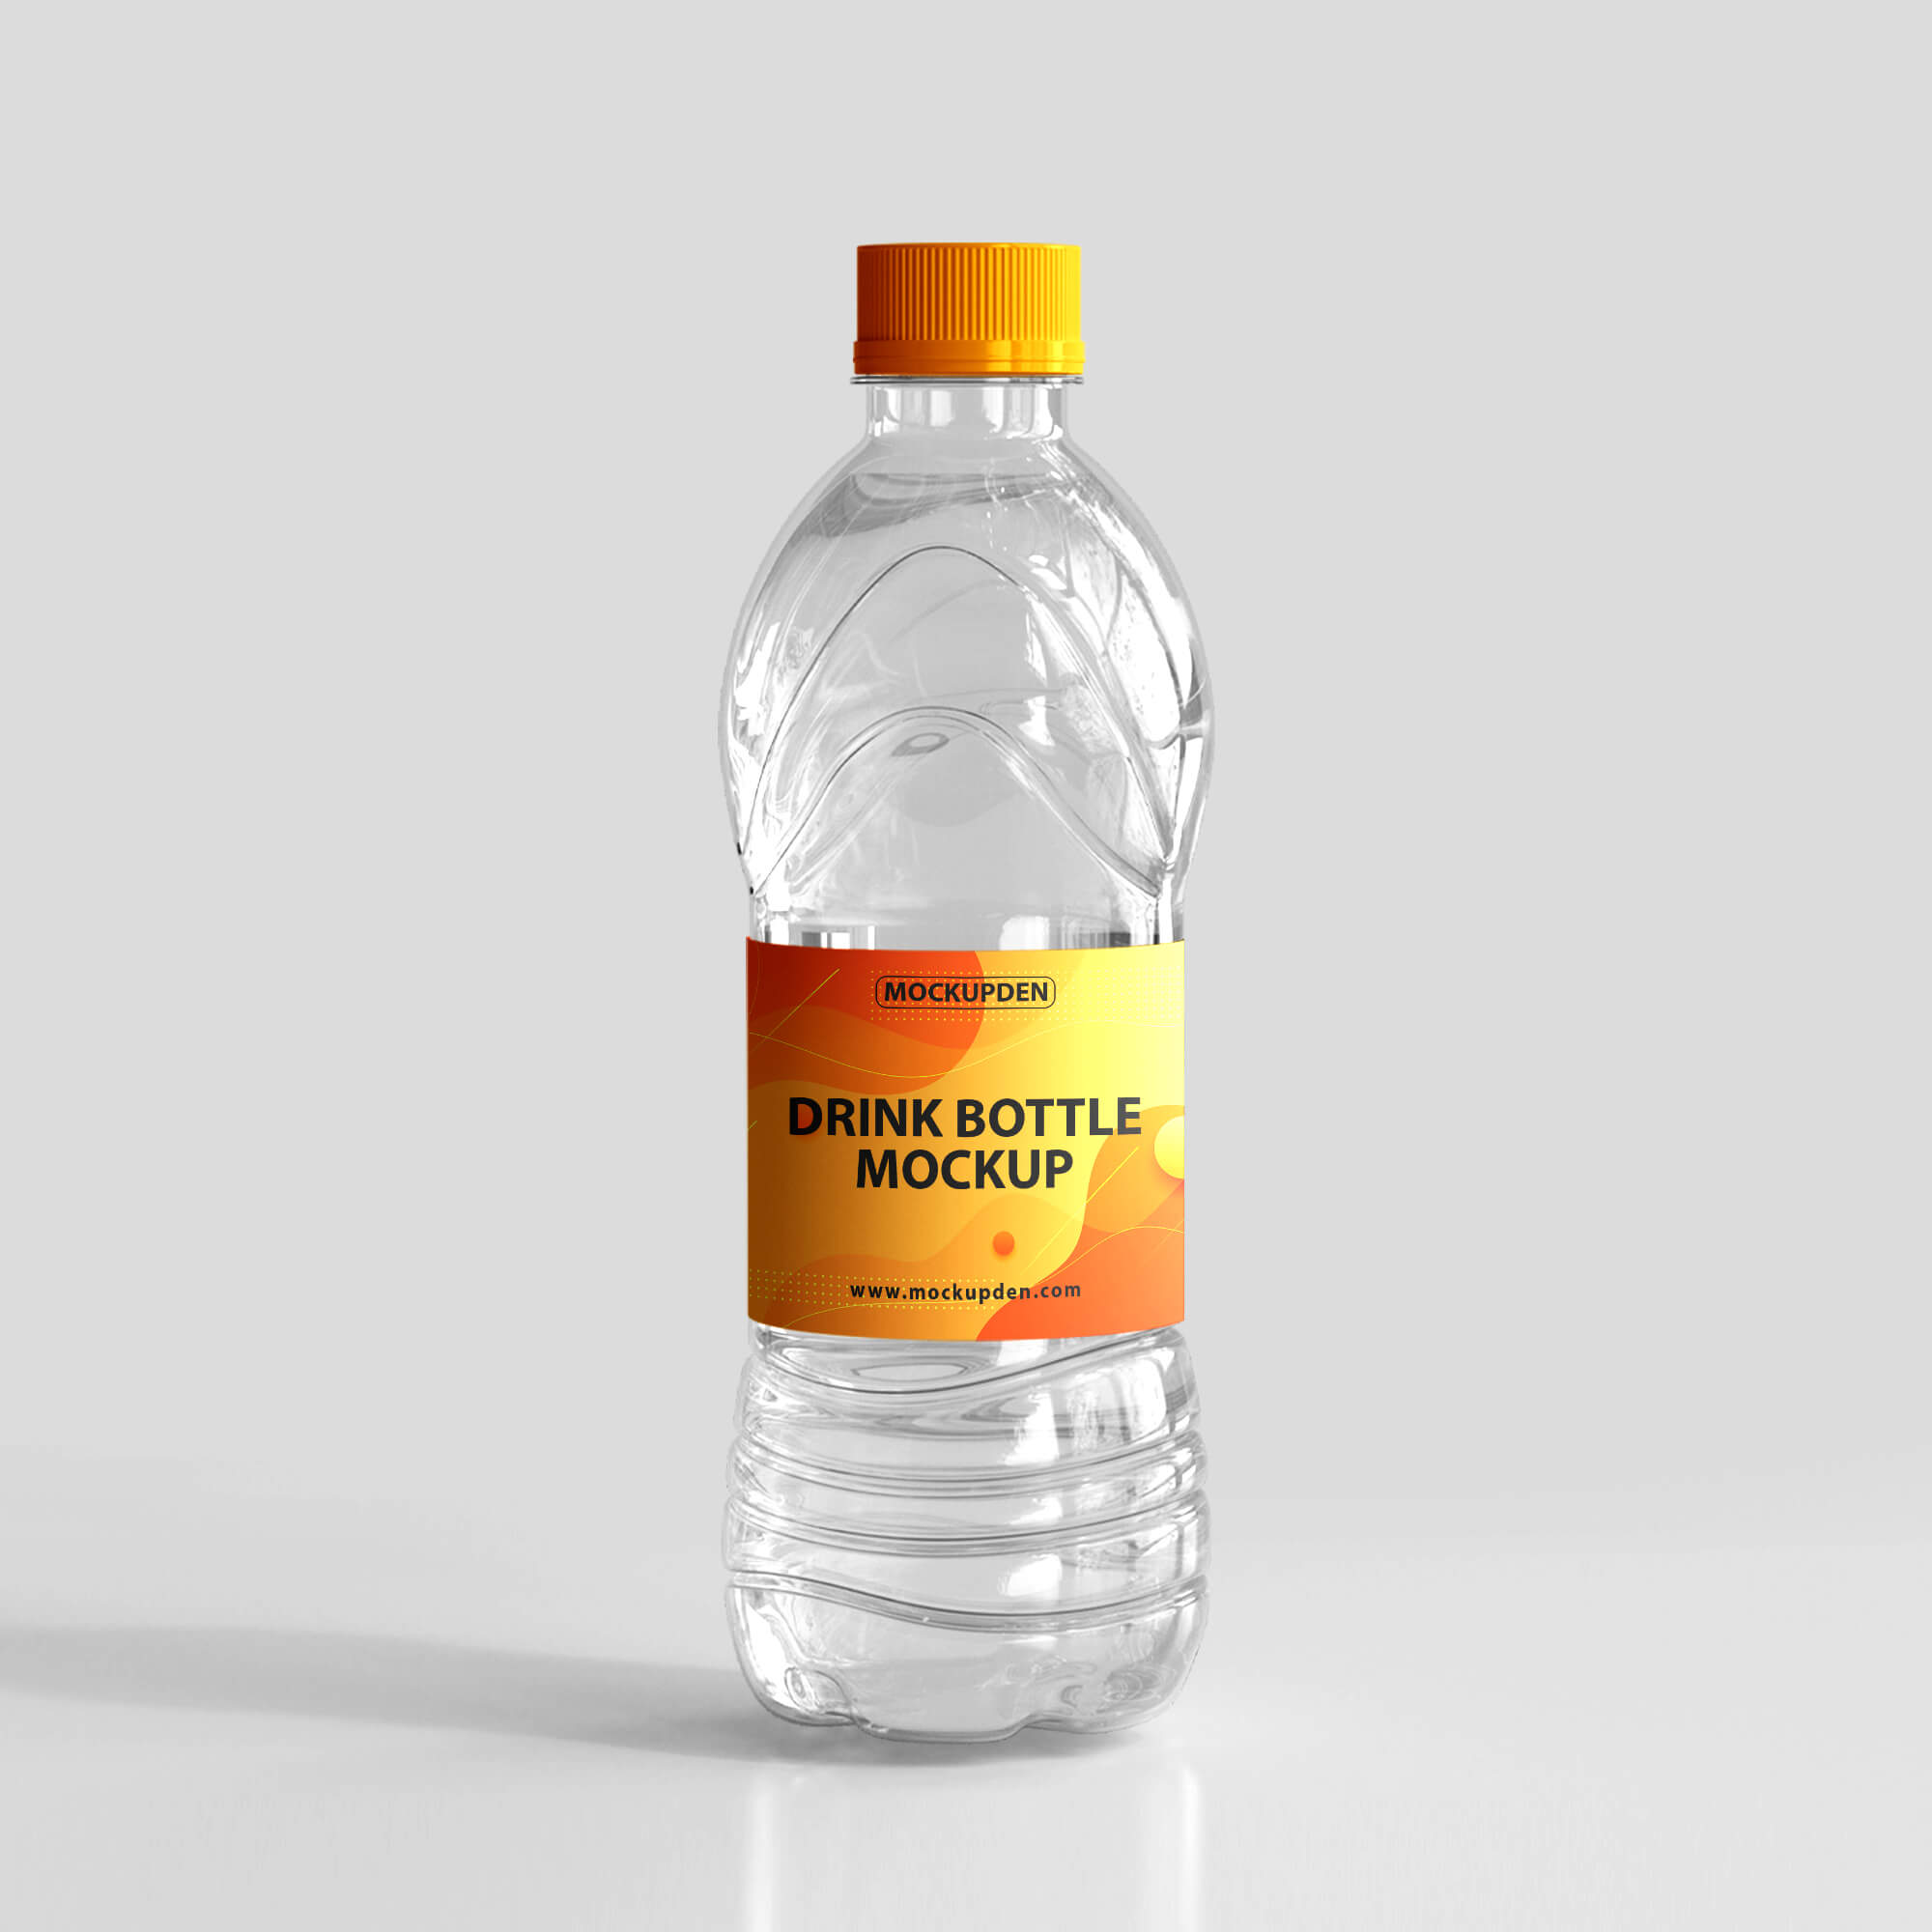 Design Free Drink Bottle Mockup PSD Template